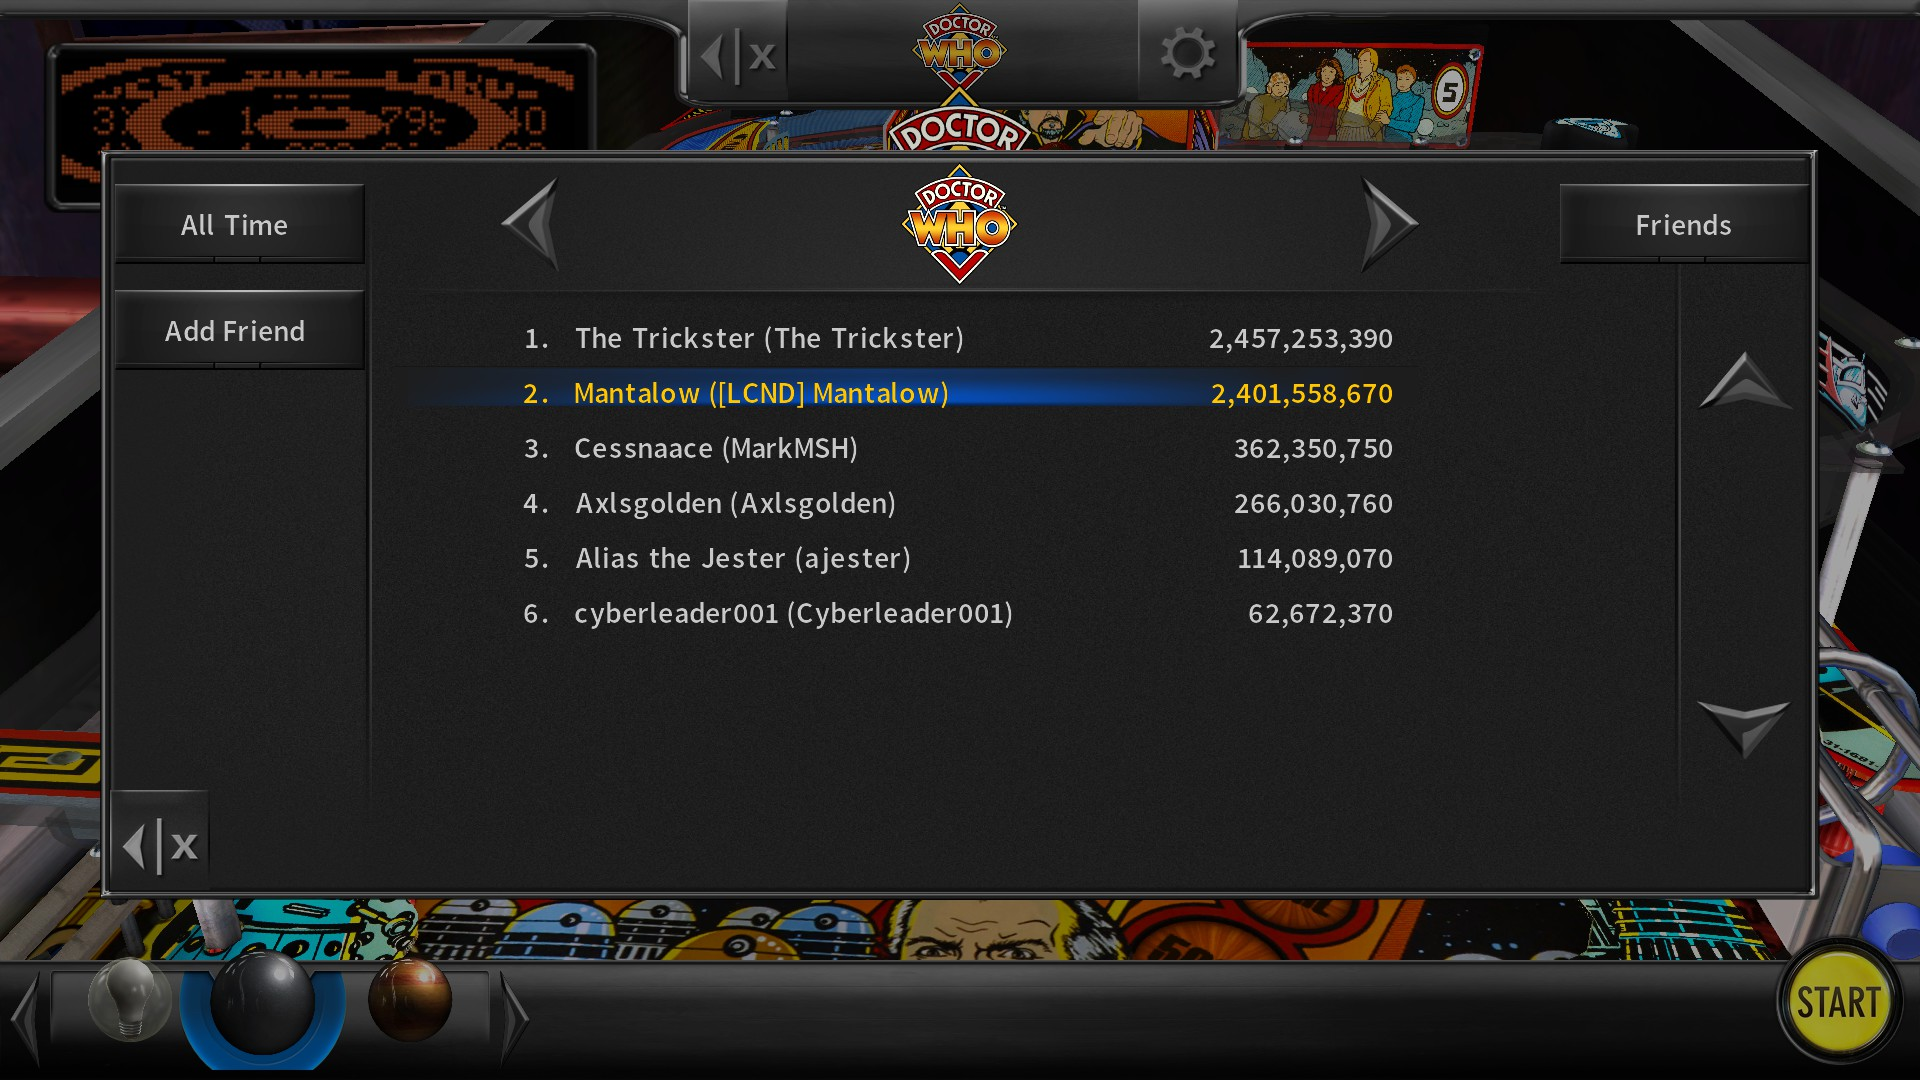 Pinball Arcade: Doctor Who 2,401,558,670 points